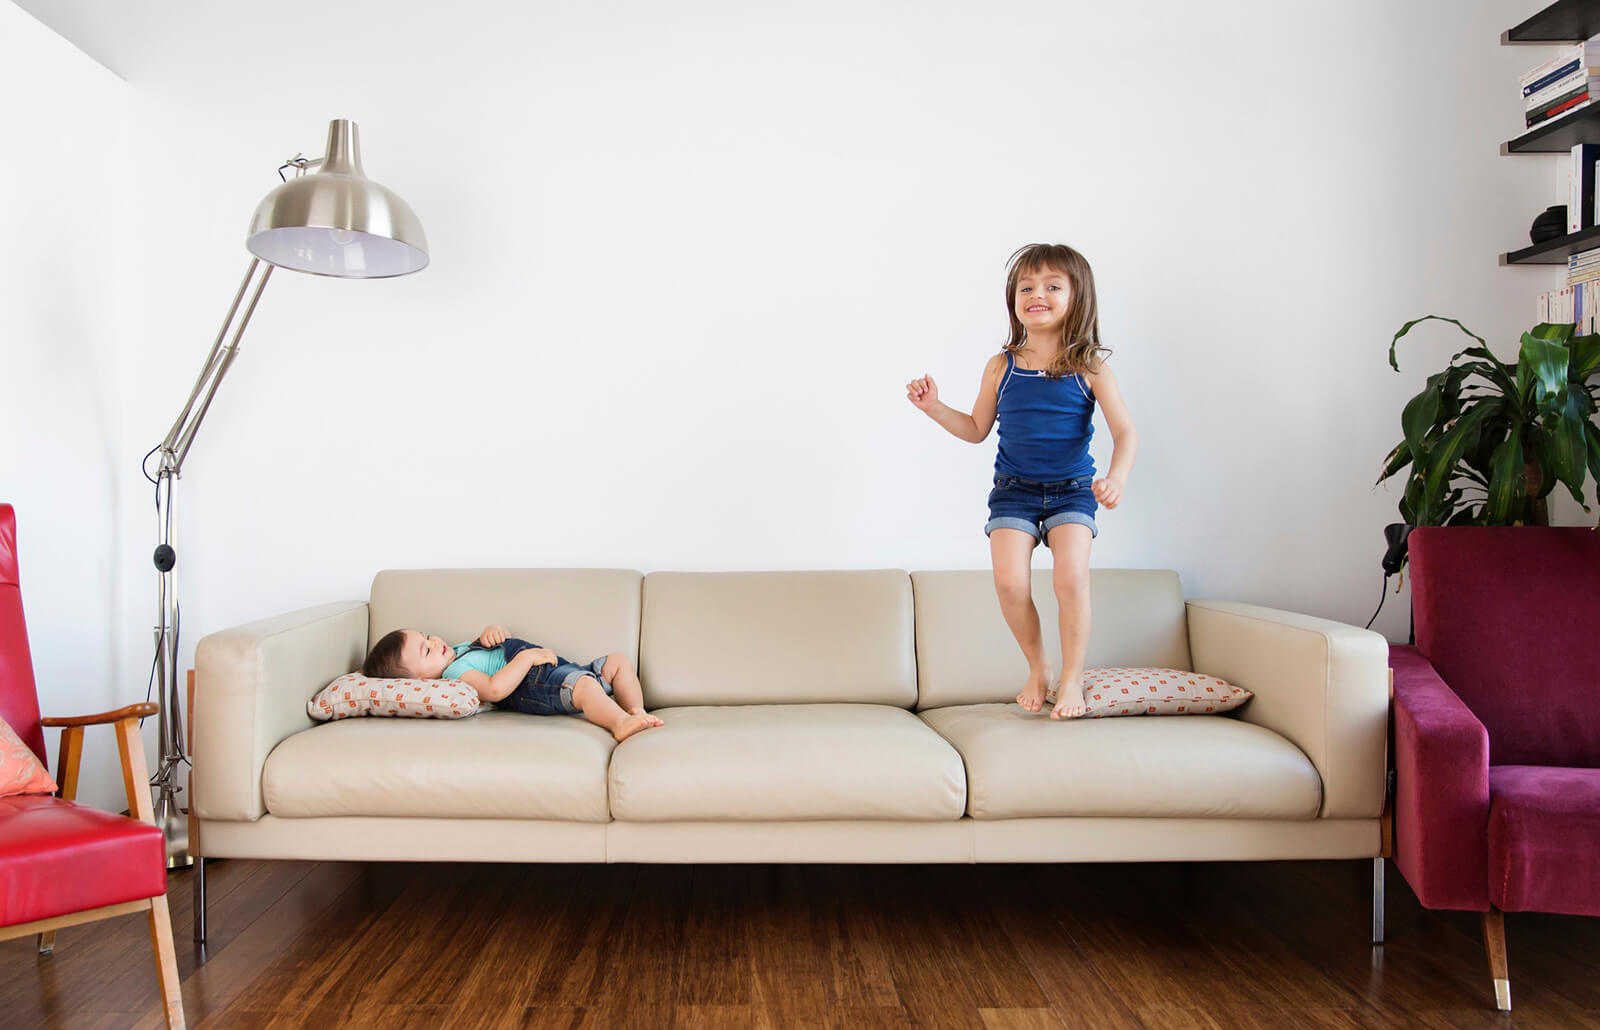 How To Clean Microfiber Couches In Easy Steps Lovetoknow